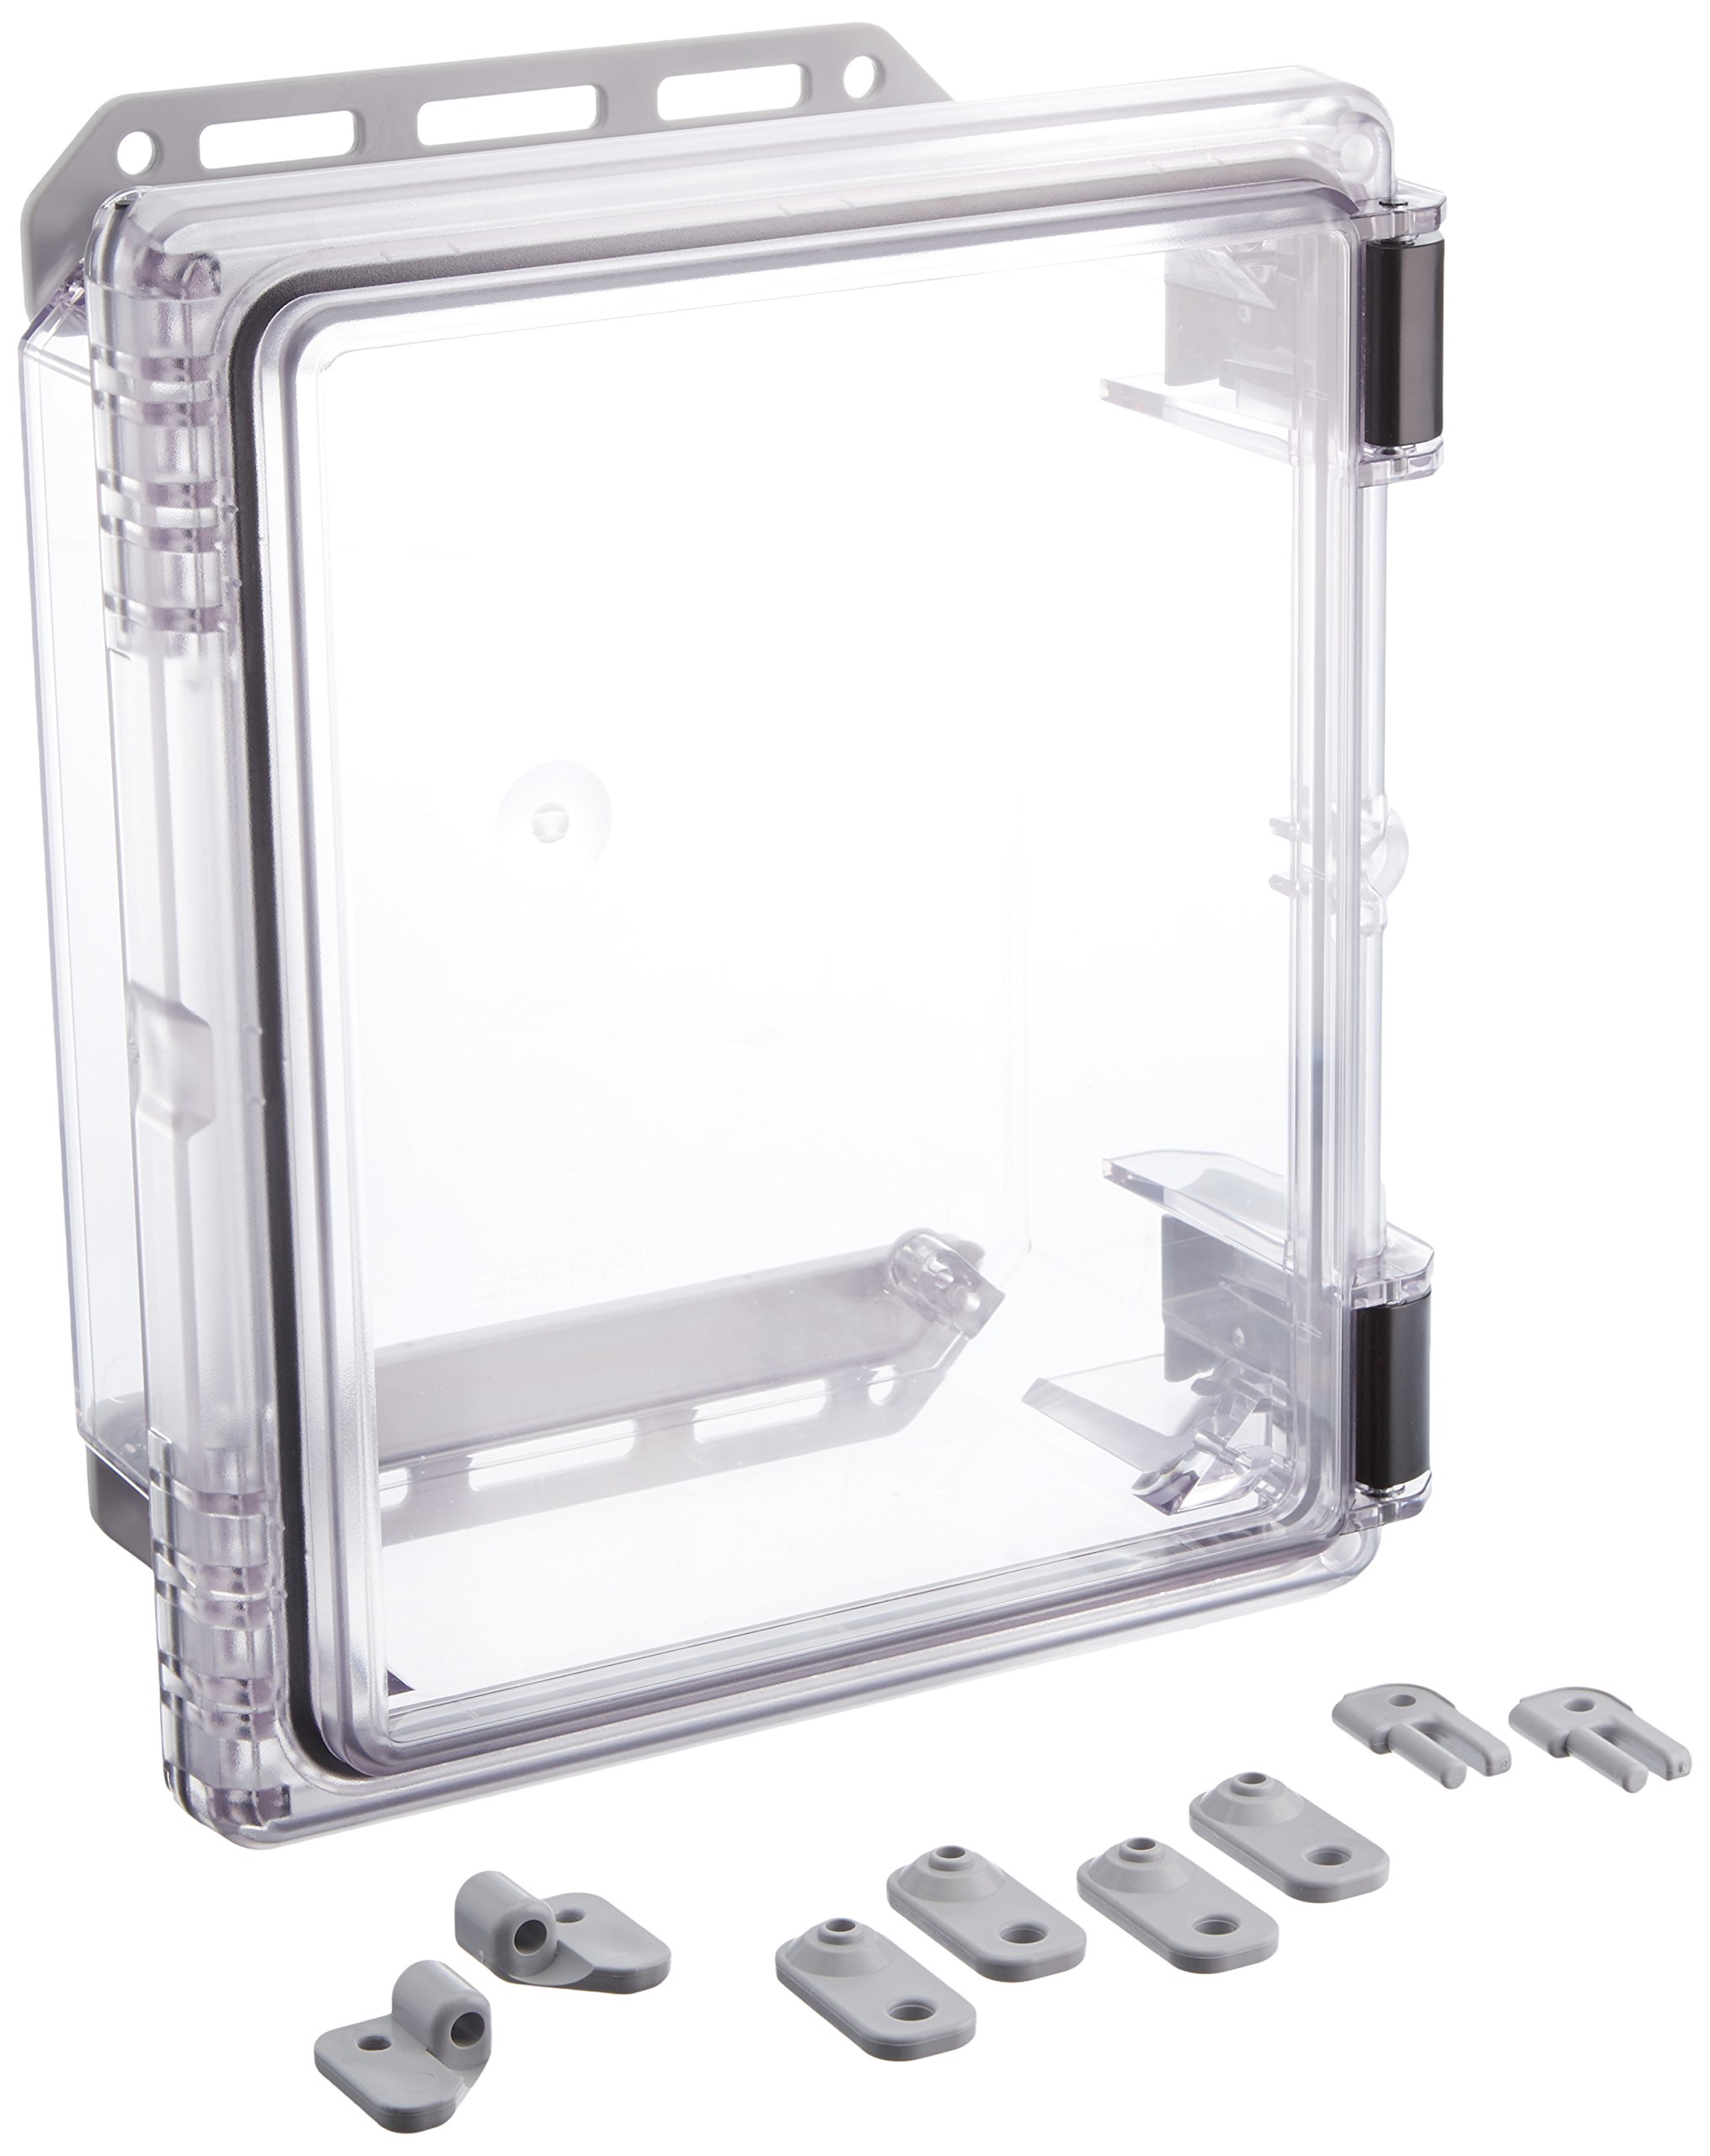 Serpac I342HL Polycarbonate Plastic Enclosure, 11-3/4'' Length x 9.98'' Width x 5.45'' Height, Clear Top/Bottom